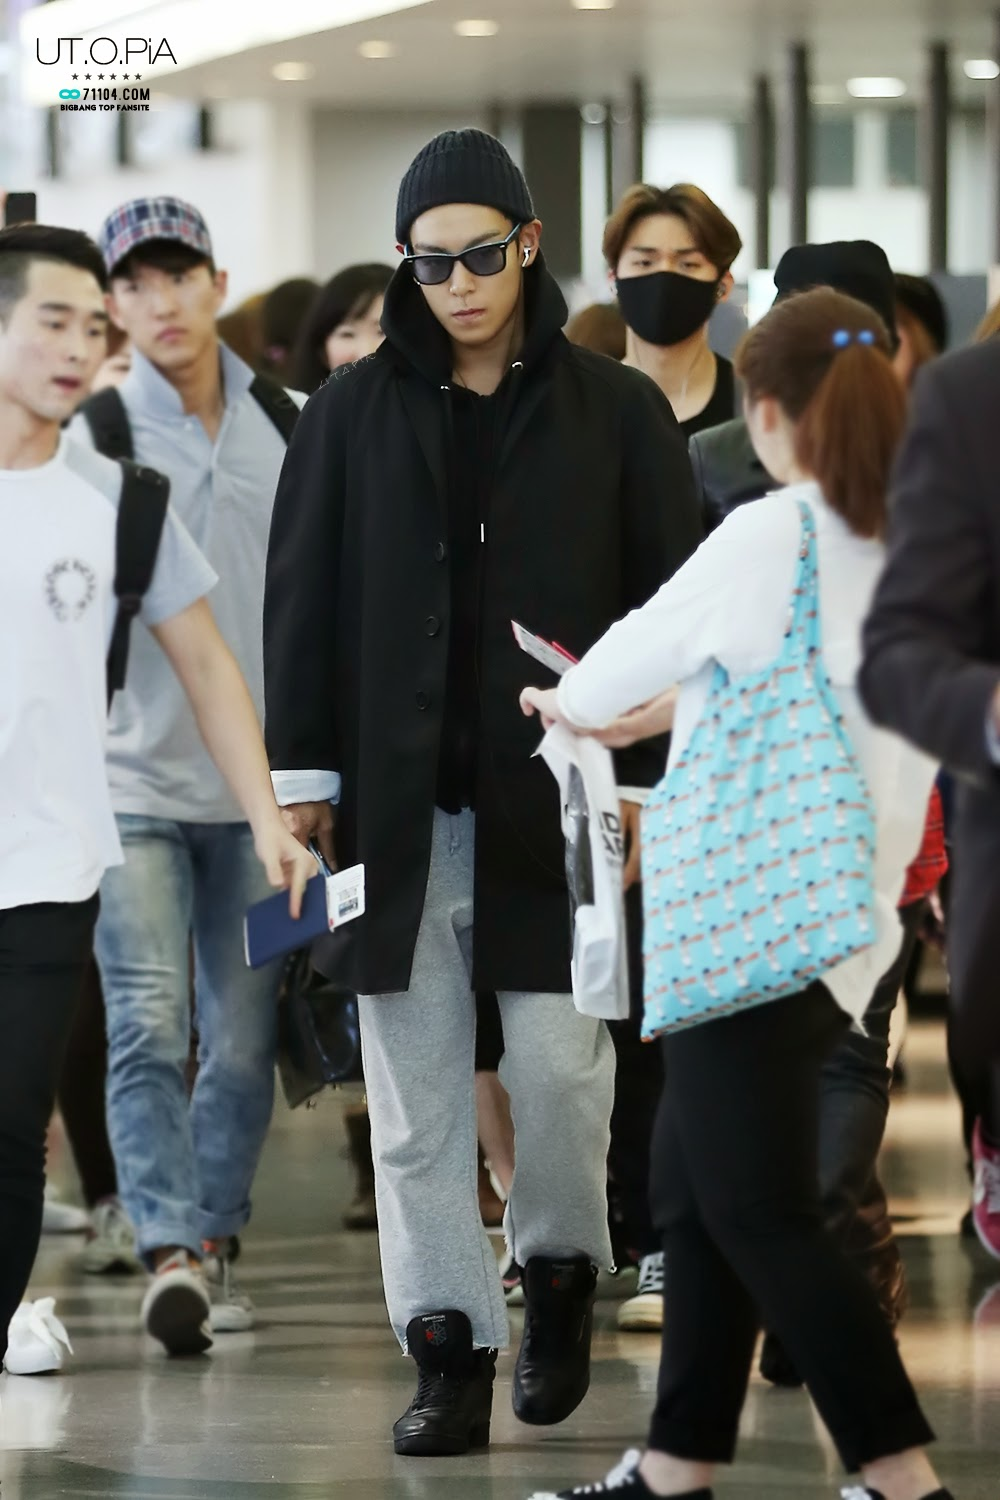 TOP - Kansai Airport - 14apr2014 - Fan - Utopia - 3.jpg